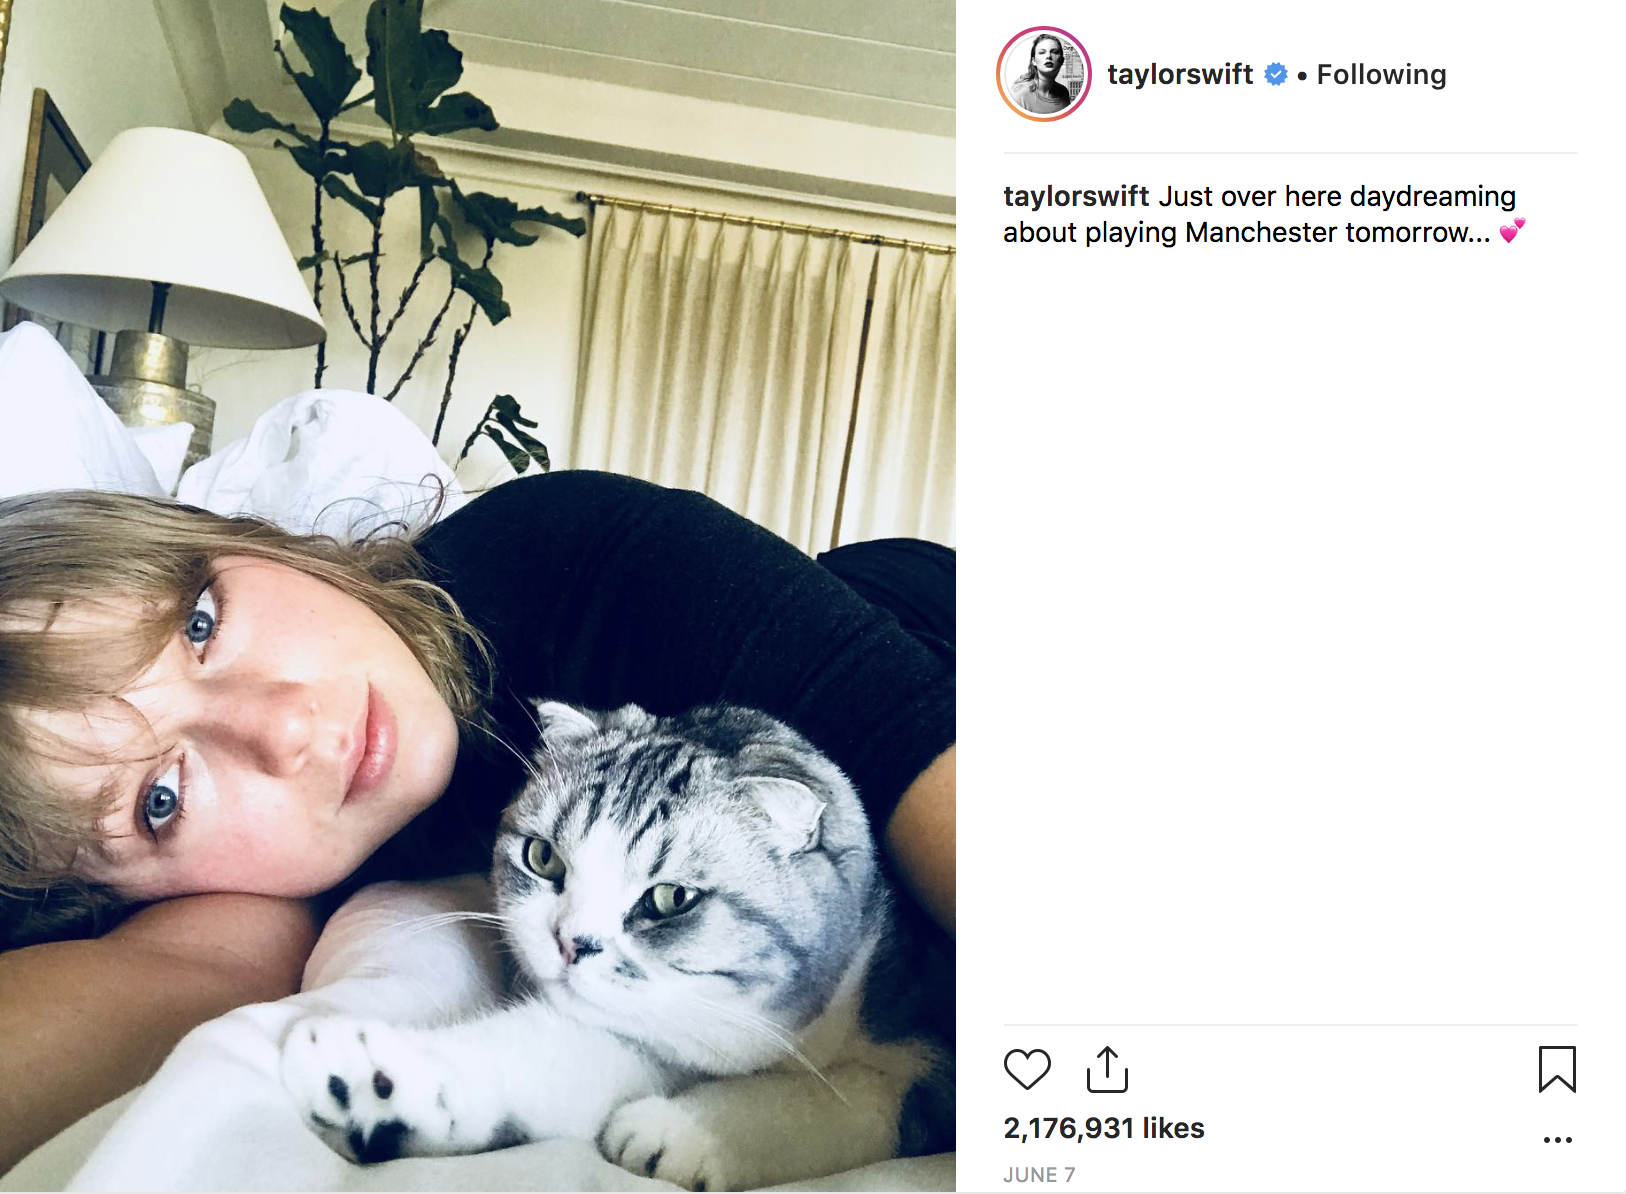 taylor-swift-instagram-influencer